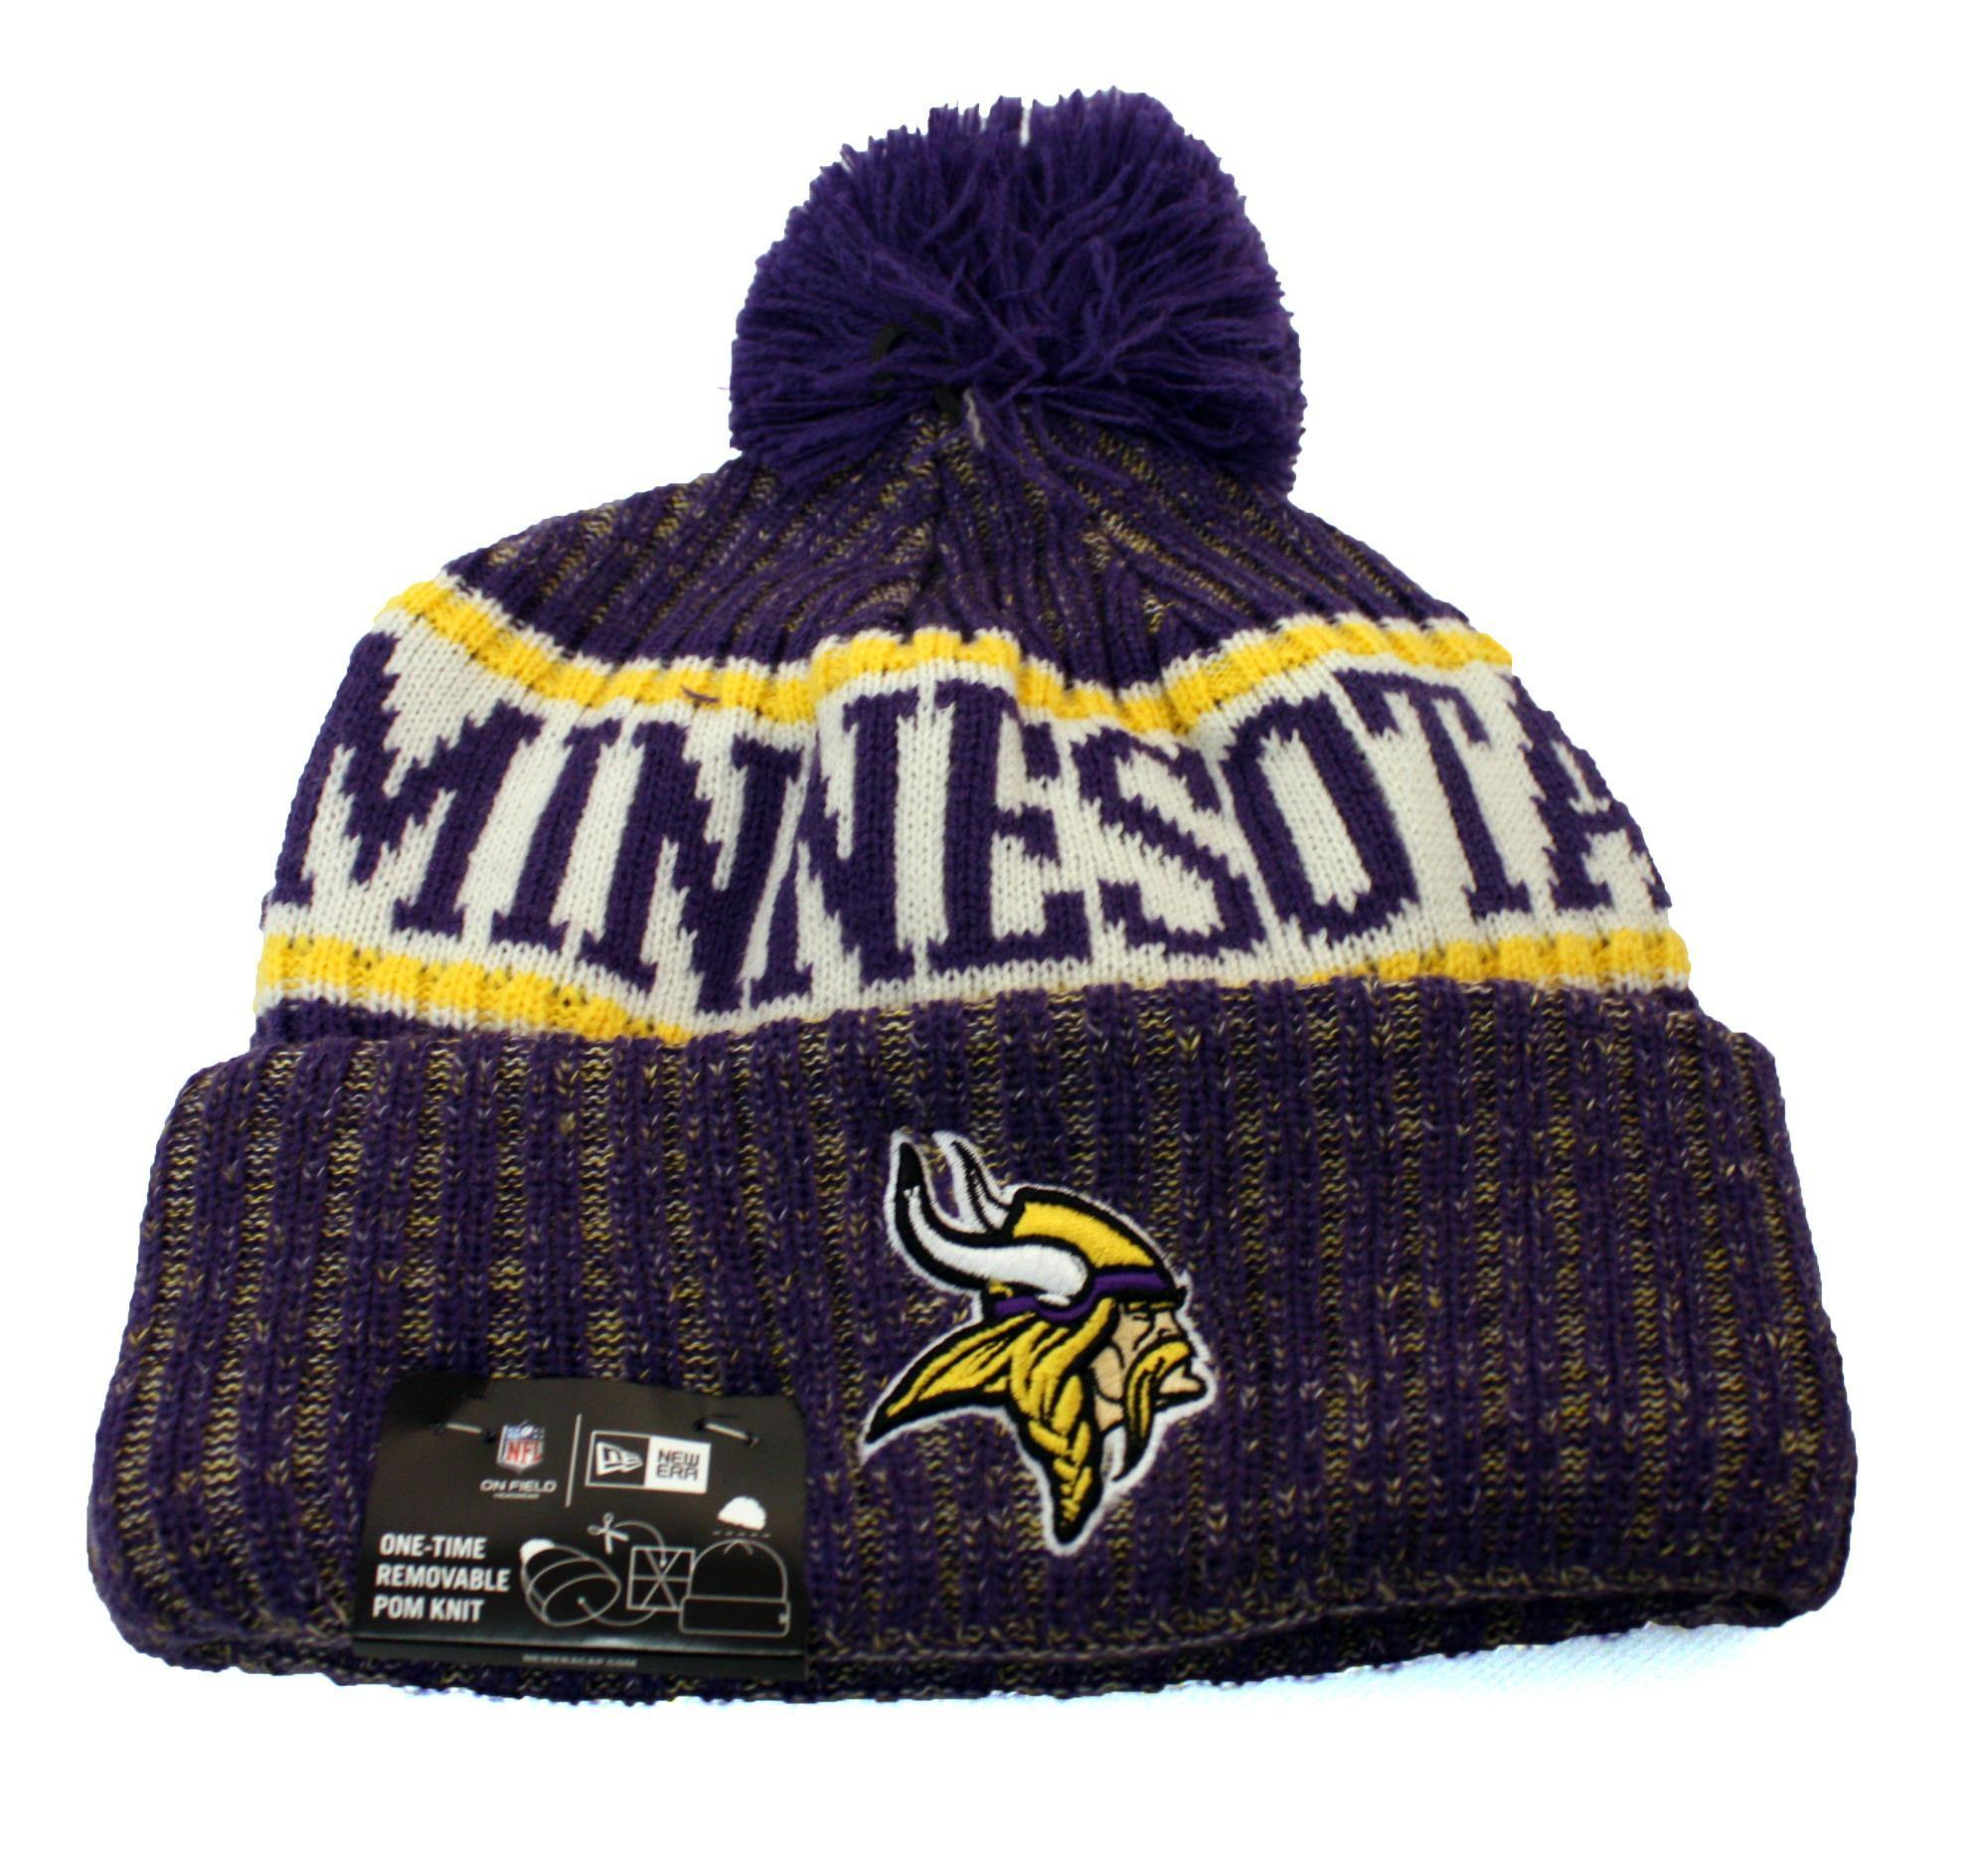 New Era - NFL knit / tuque Vikings.